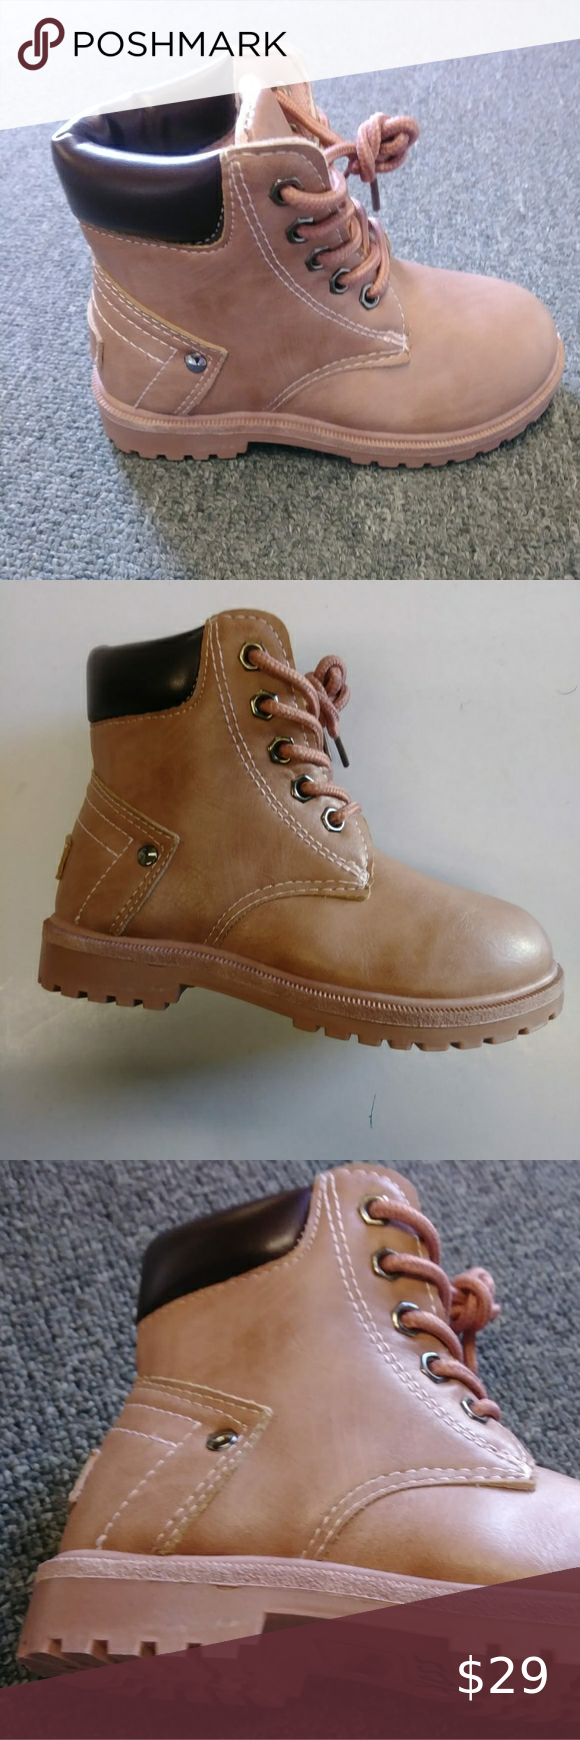 Work Hiker Boots - Lace-up vamp